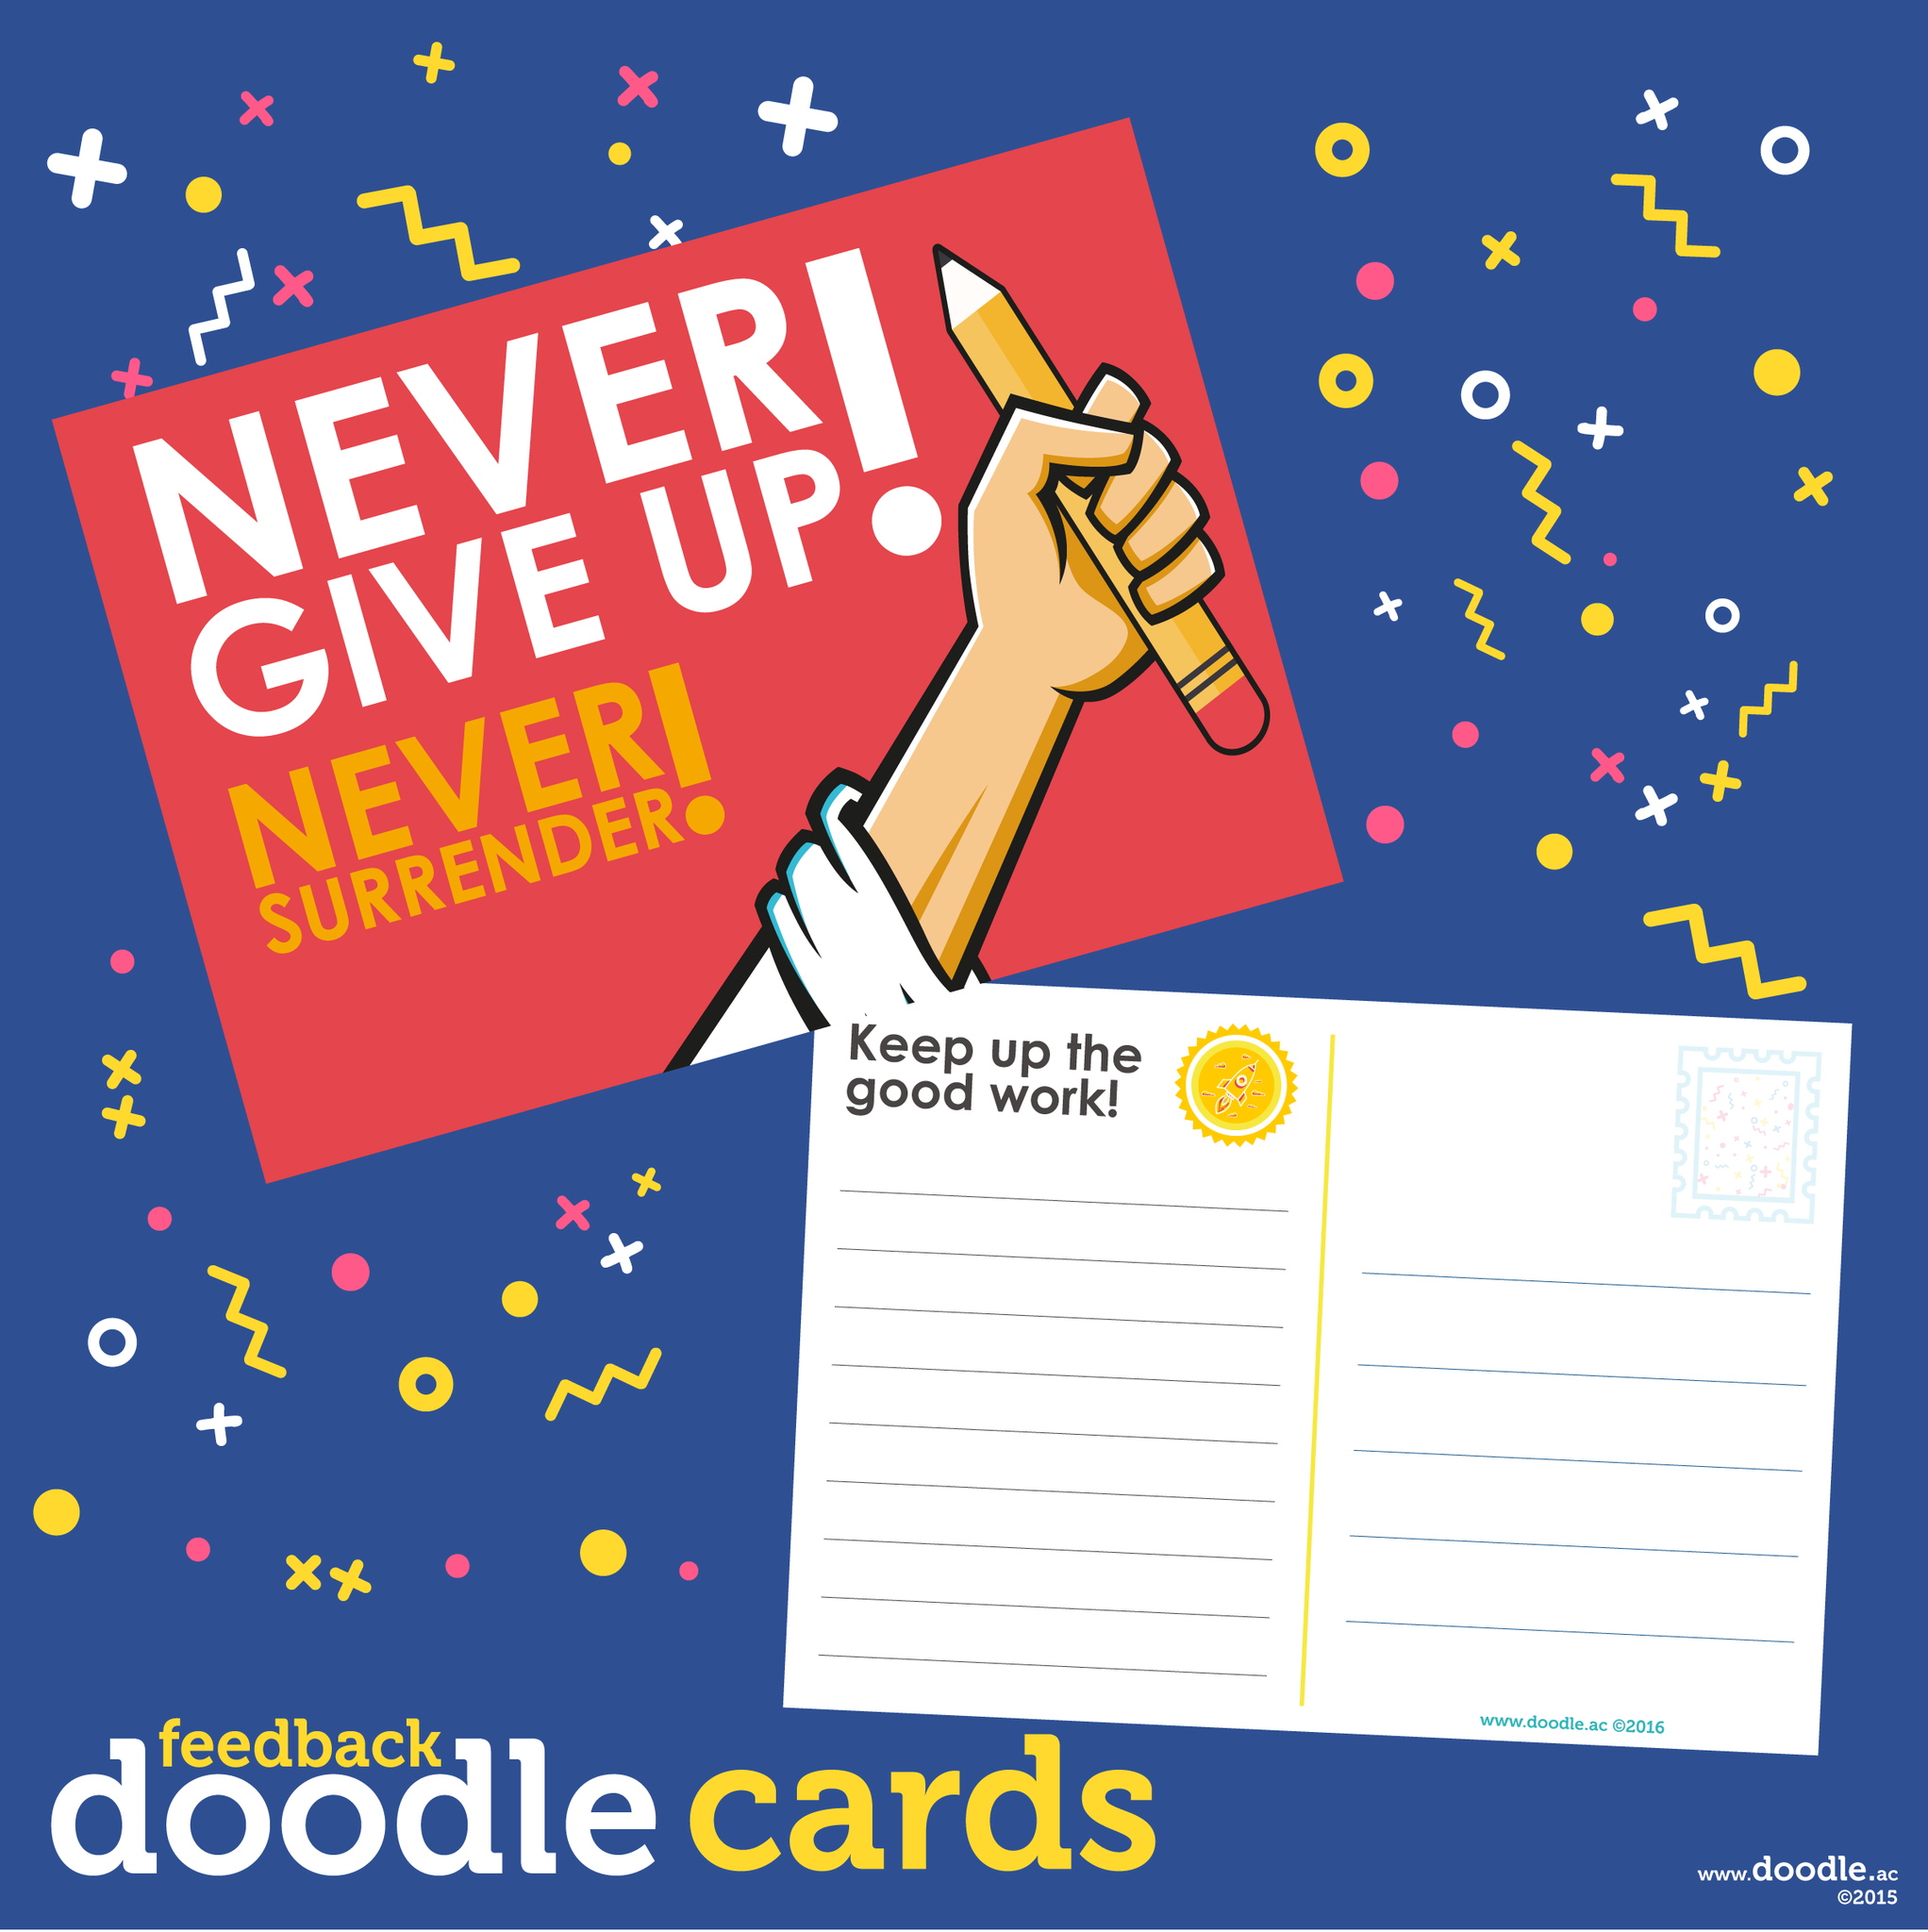 Never give up doodle cards - doodle education